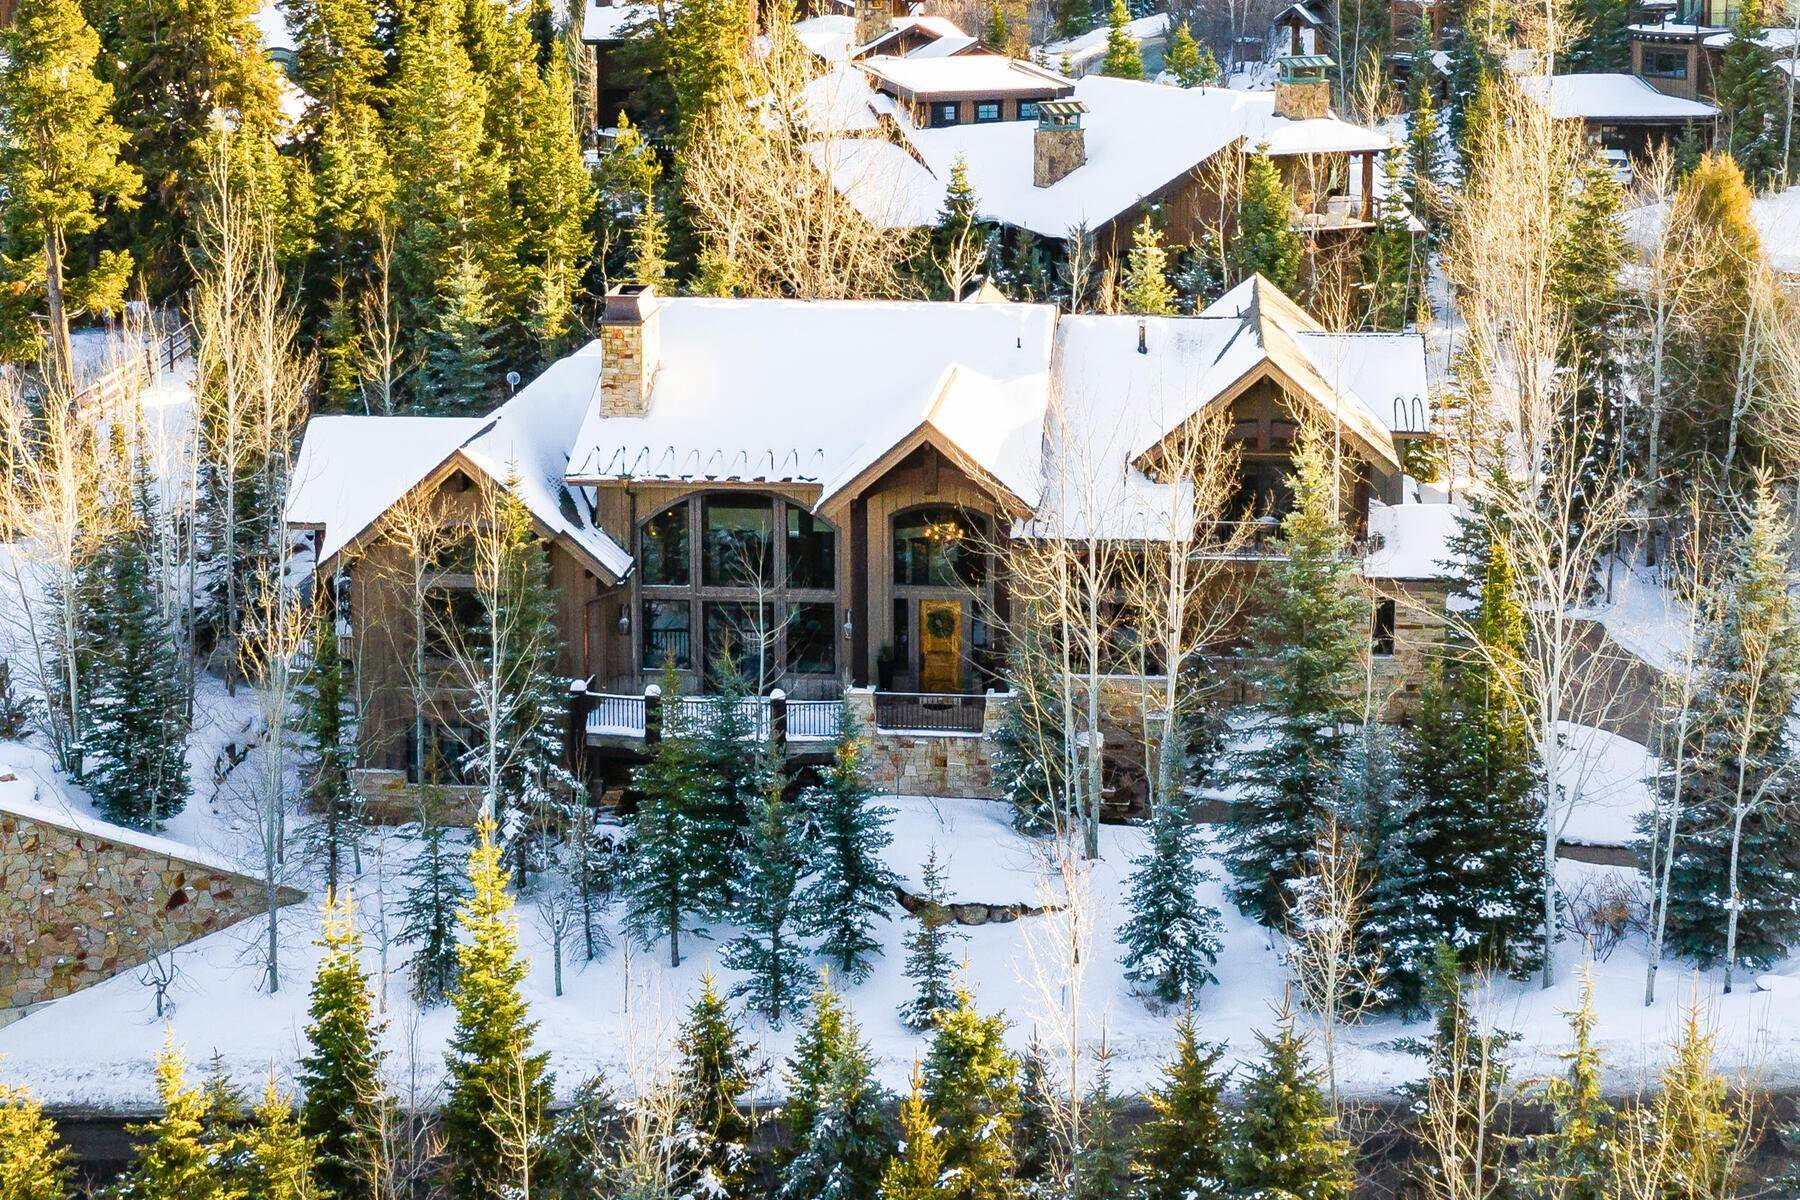 Single Family Homes for Sale at Ski-In Ski-Out Luxury Residence at Vail Canyons Gold Coast-Excellent Value 2325 W Red Pine Road Park City, Utah 84098 United States